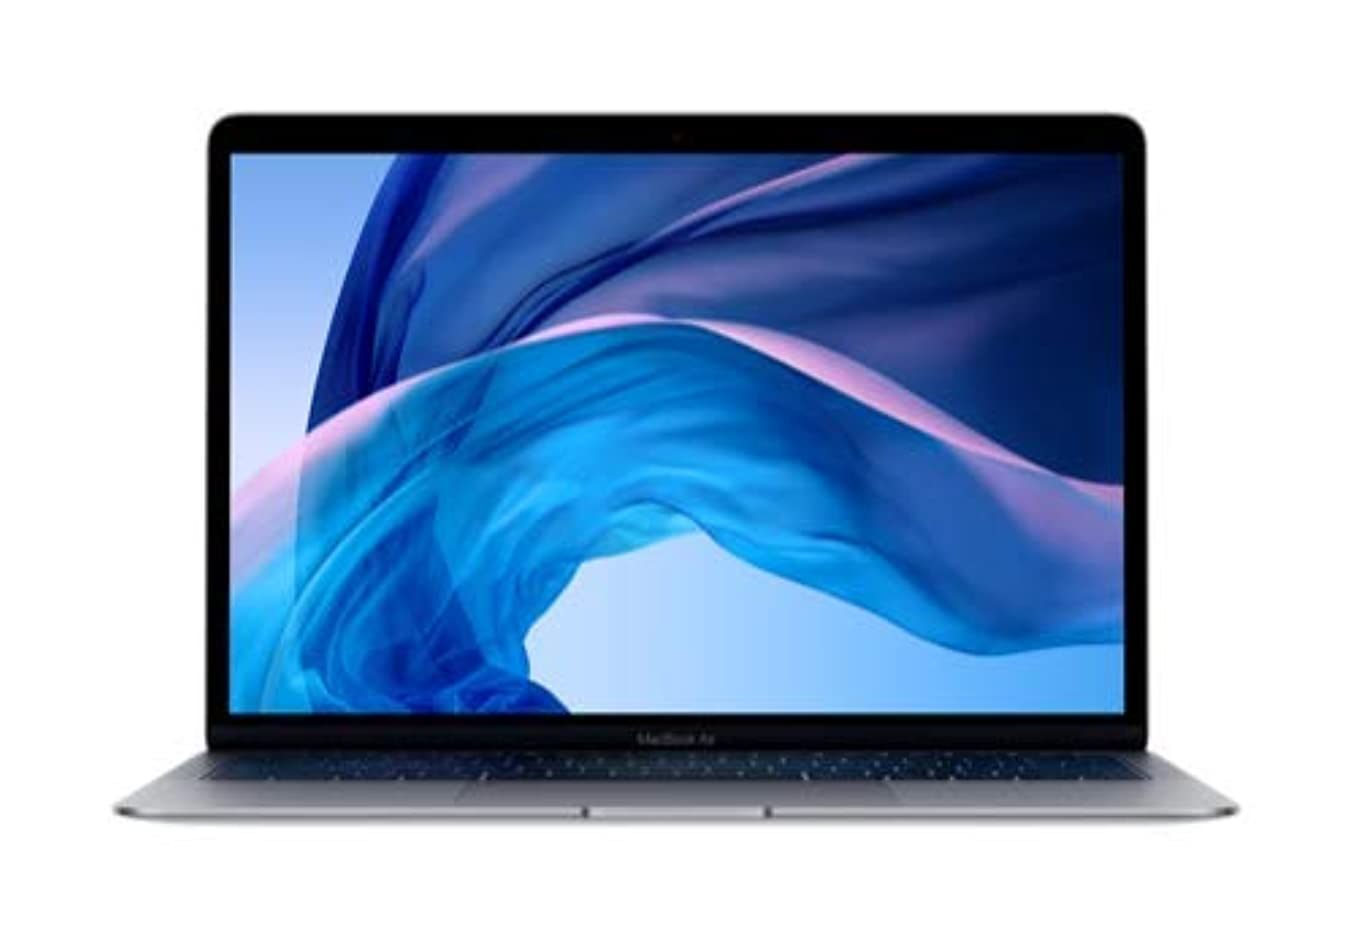 Apple MacBook Air (13-inch Retina Display, 1.6GHz Dual-core Intel Core i5, 16GB RAM, 256GB SSD) - Space Gray (Latest Model) - Z0VE0004N